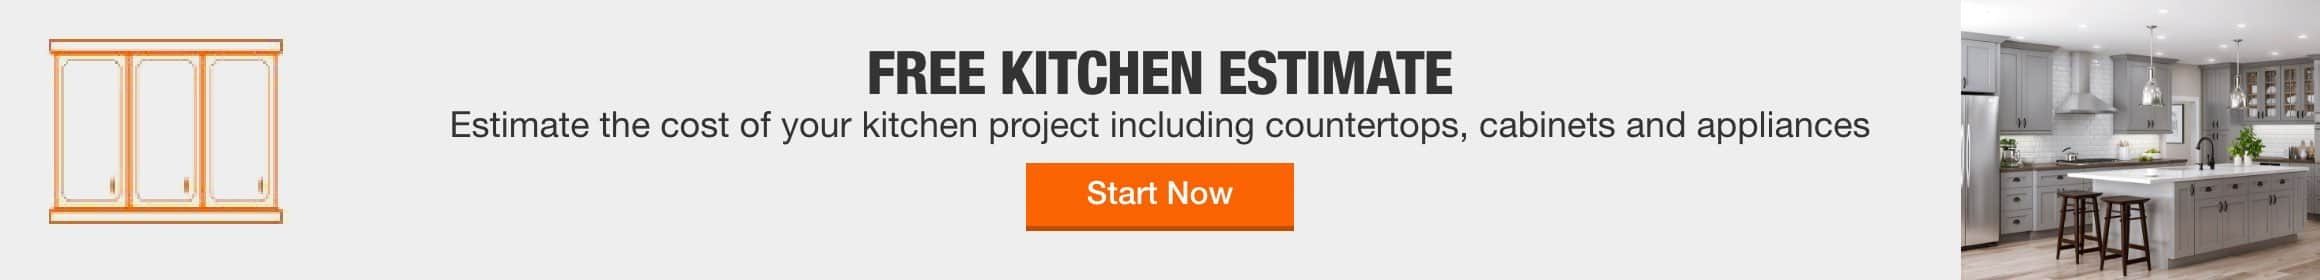 free kitchen estimate